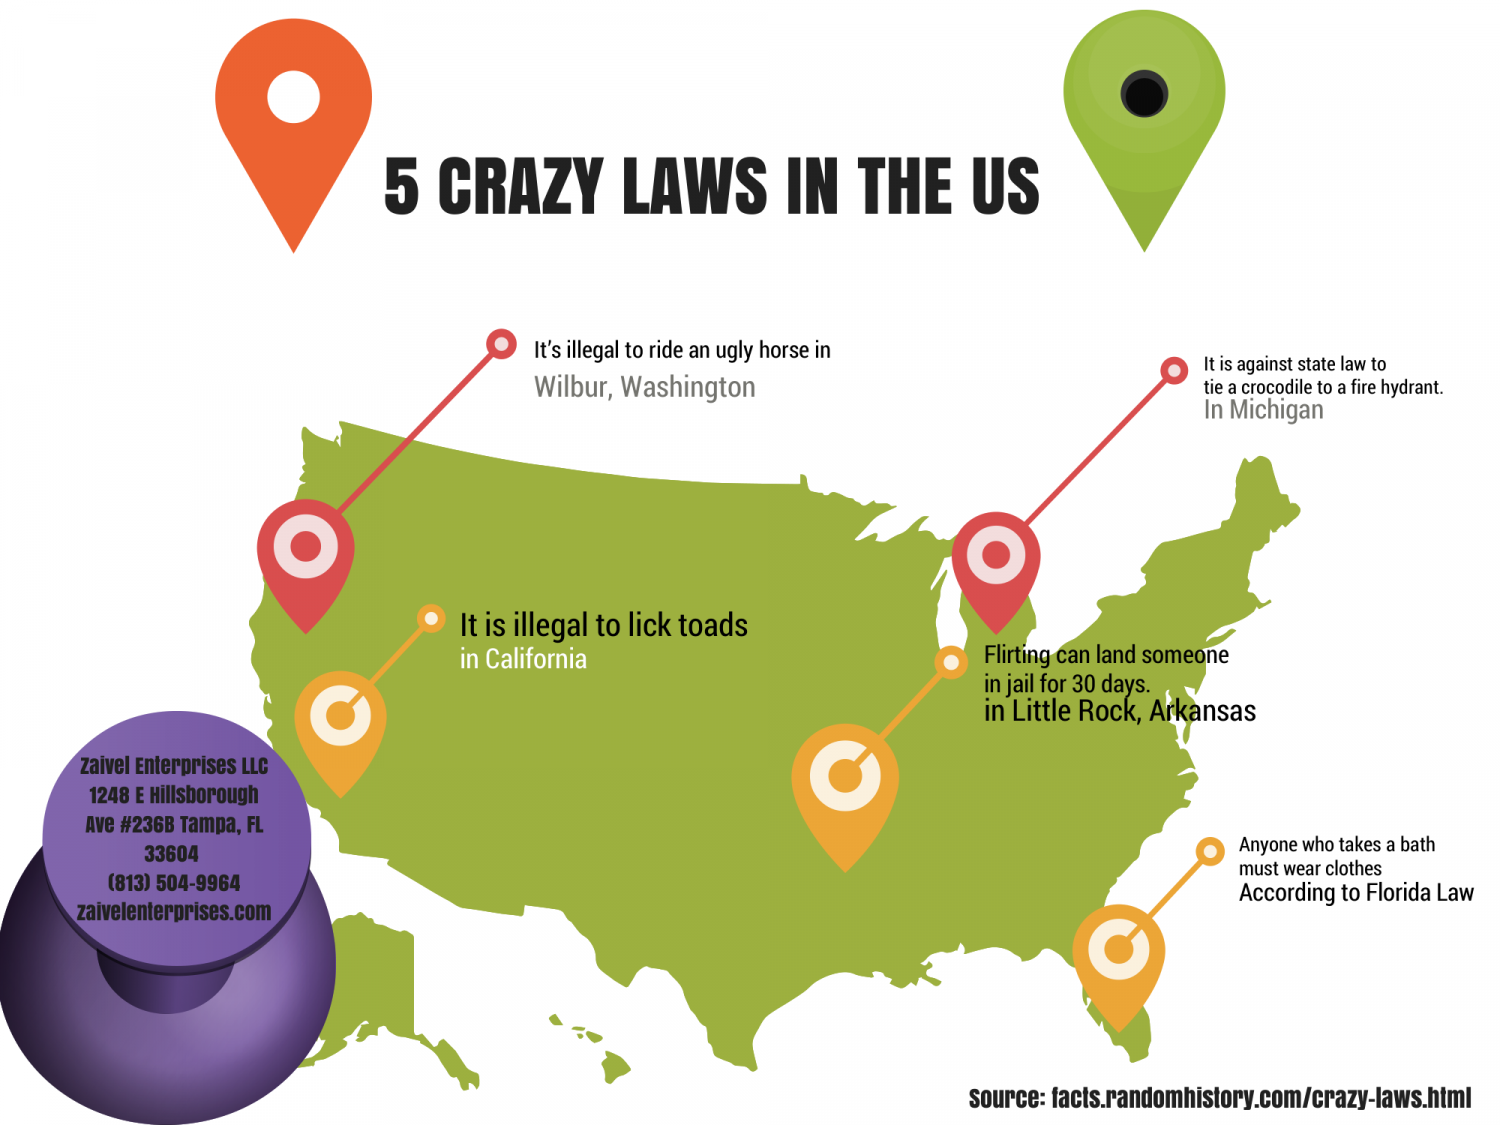 5 Crazy Laws in the US Infographic